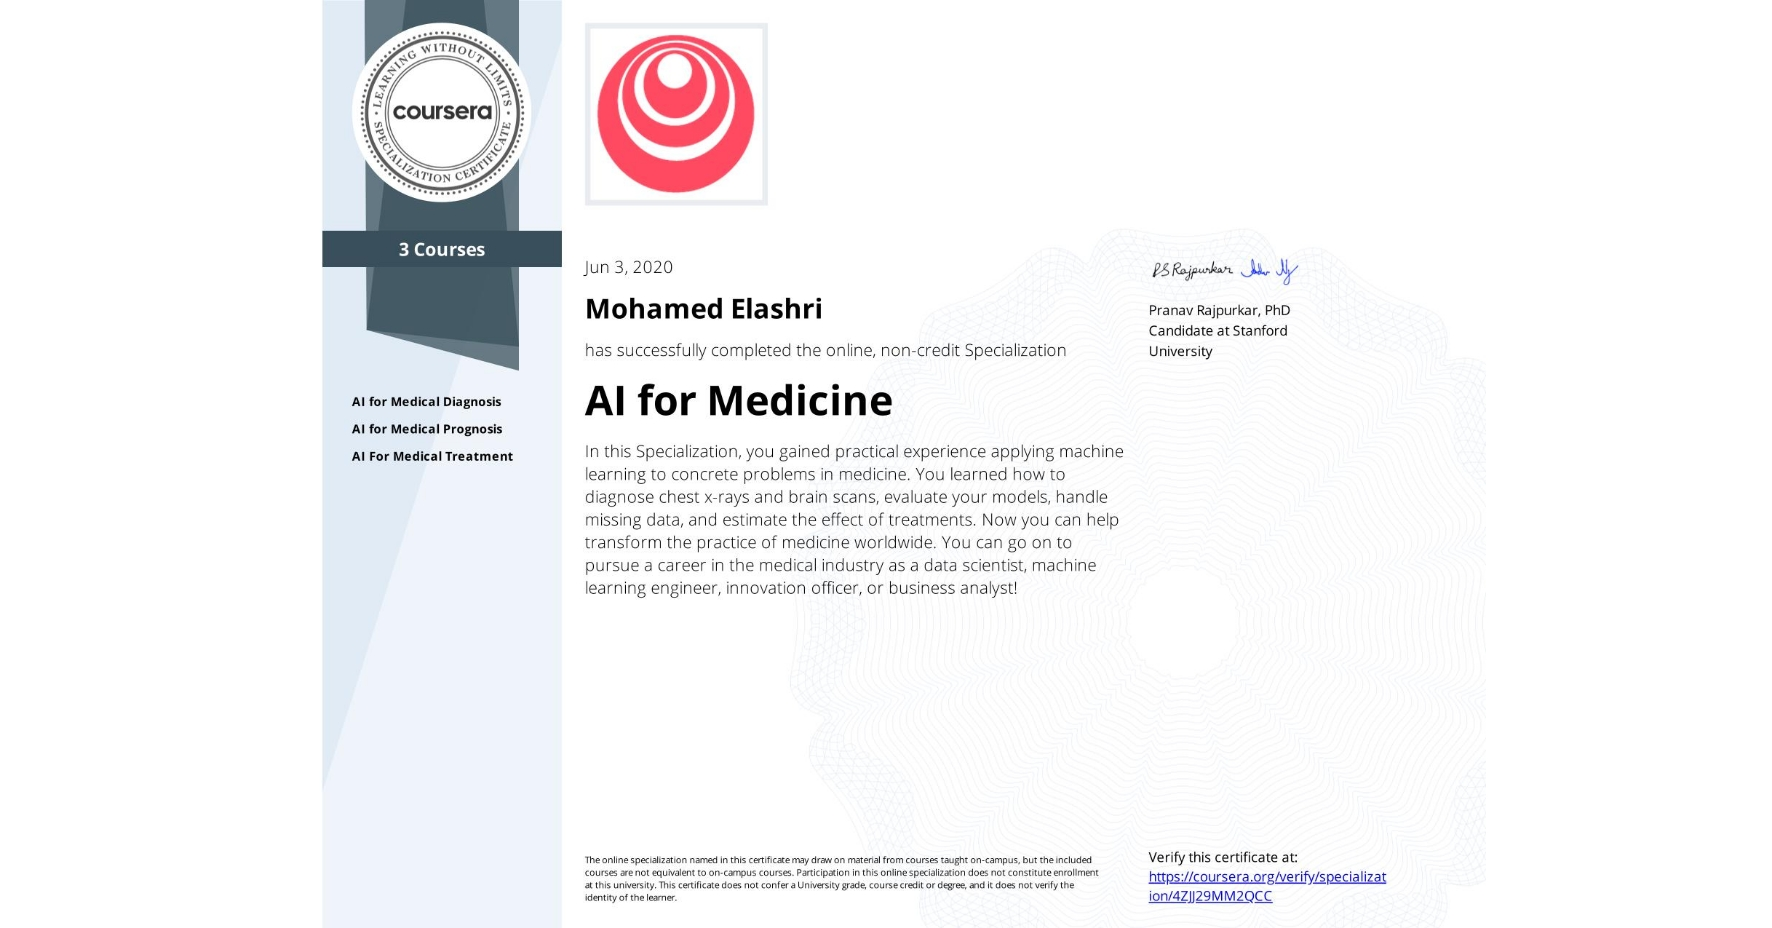 View certificate for Mohamed Elashri, AI for Medicine, offered through Coursera. In this Specialization, you gained practical experience applying machine learning to concrete problems in medicine. You learned how to diagnose chest x-rays and brain scans, evaluate your models, handle missing data, and estimate the effect of treatments.   Now you can help transform the practice of medicine worldwide. You can go on to pursue a career in the medical industry as a data scientist, machine learning engineer, innovation officer, or business analyst!